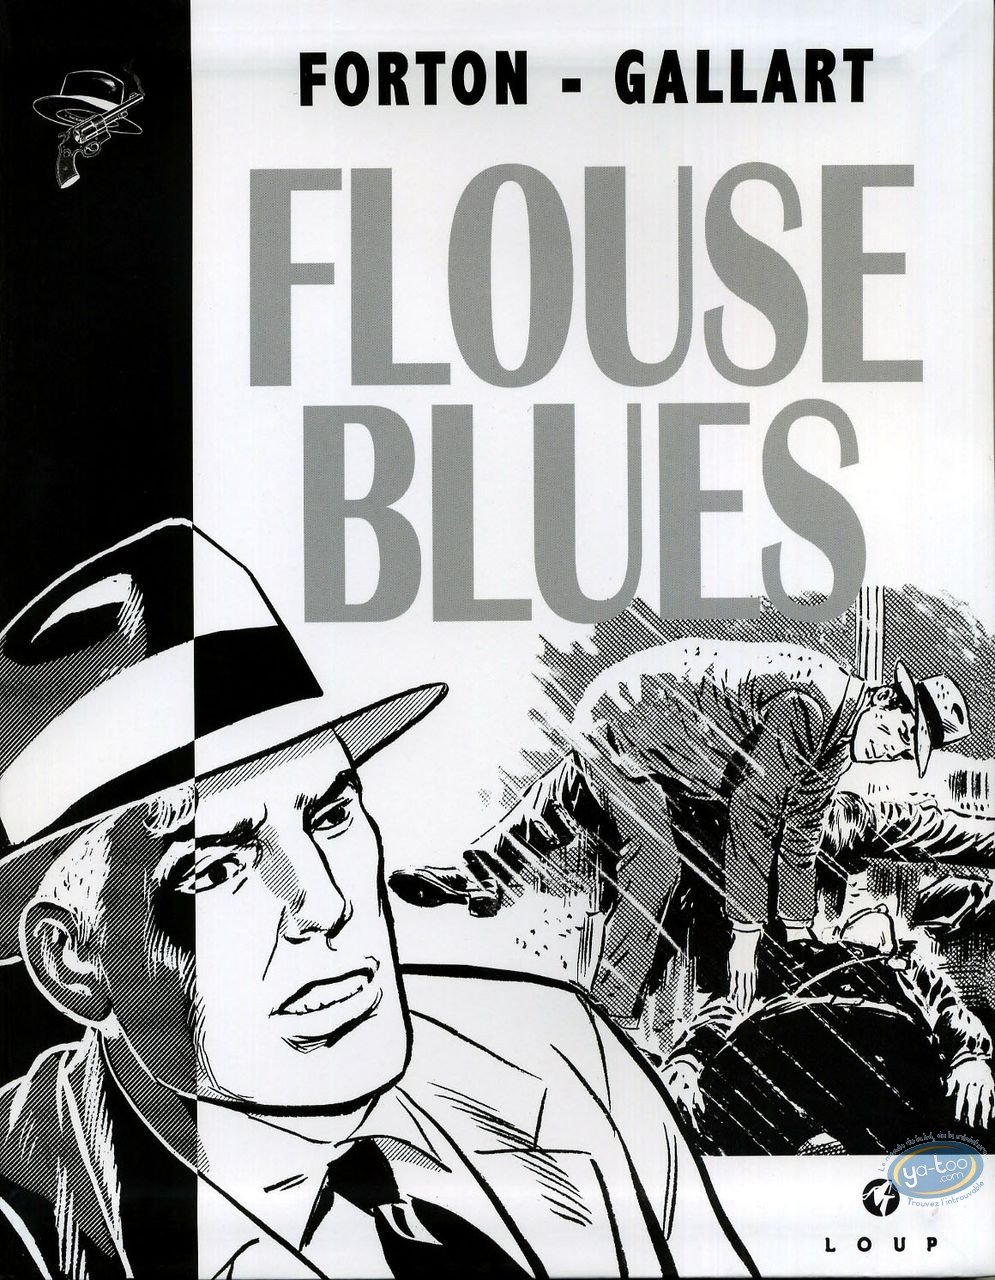 Reduced price European comic books, Dan Geronimo : Dan Geronimo - Flouse Blues